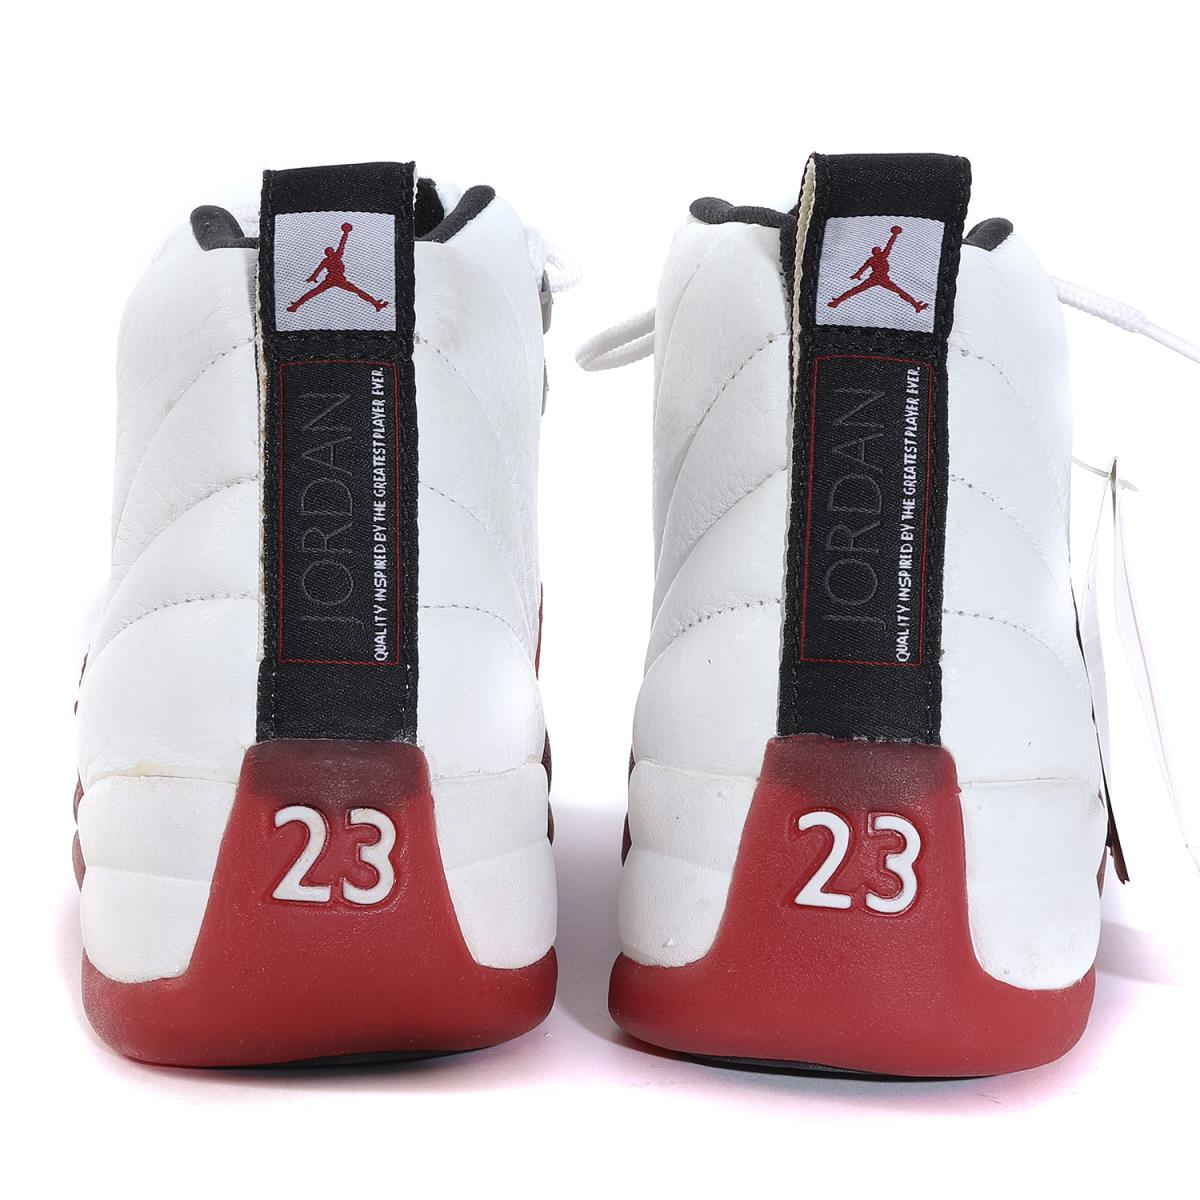 new style 5486e 79eca NIKE (Nike) AIR JORDAN 12 (original model / 130,690-161 made in 96) white X  bar city red US8.5(26.5cm)